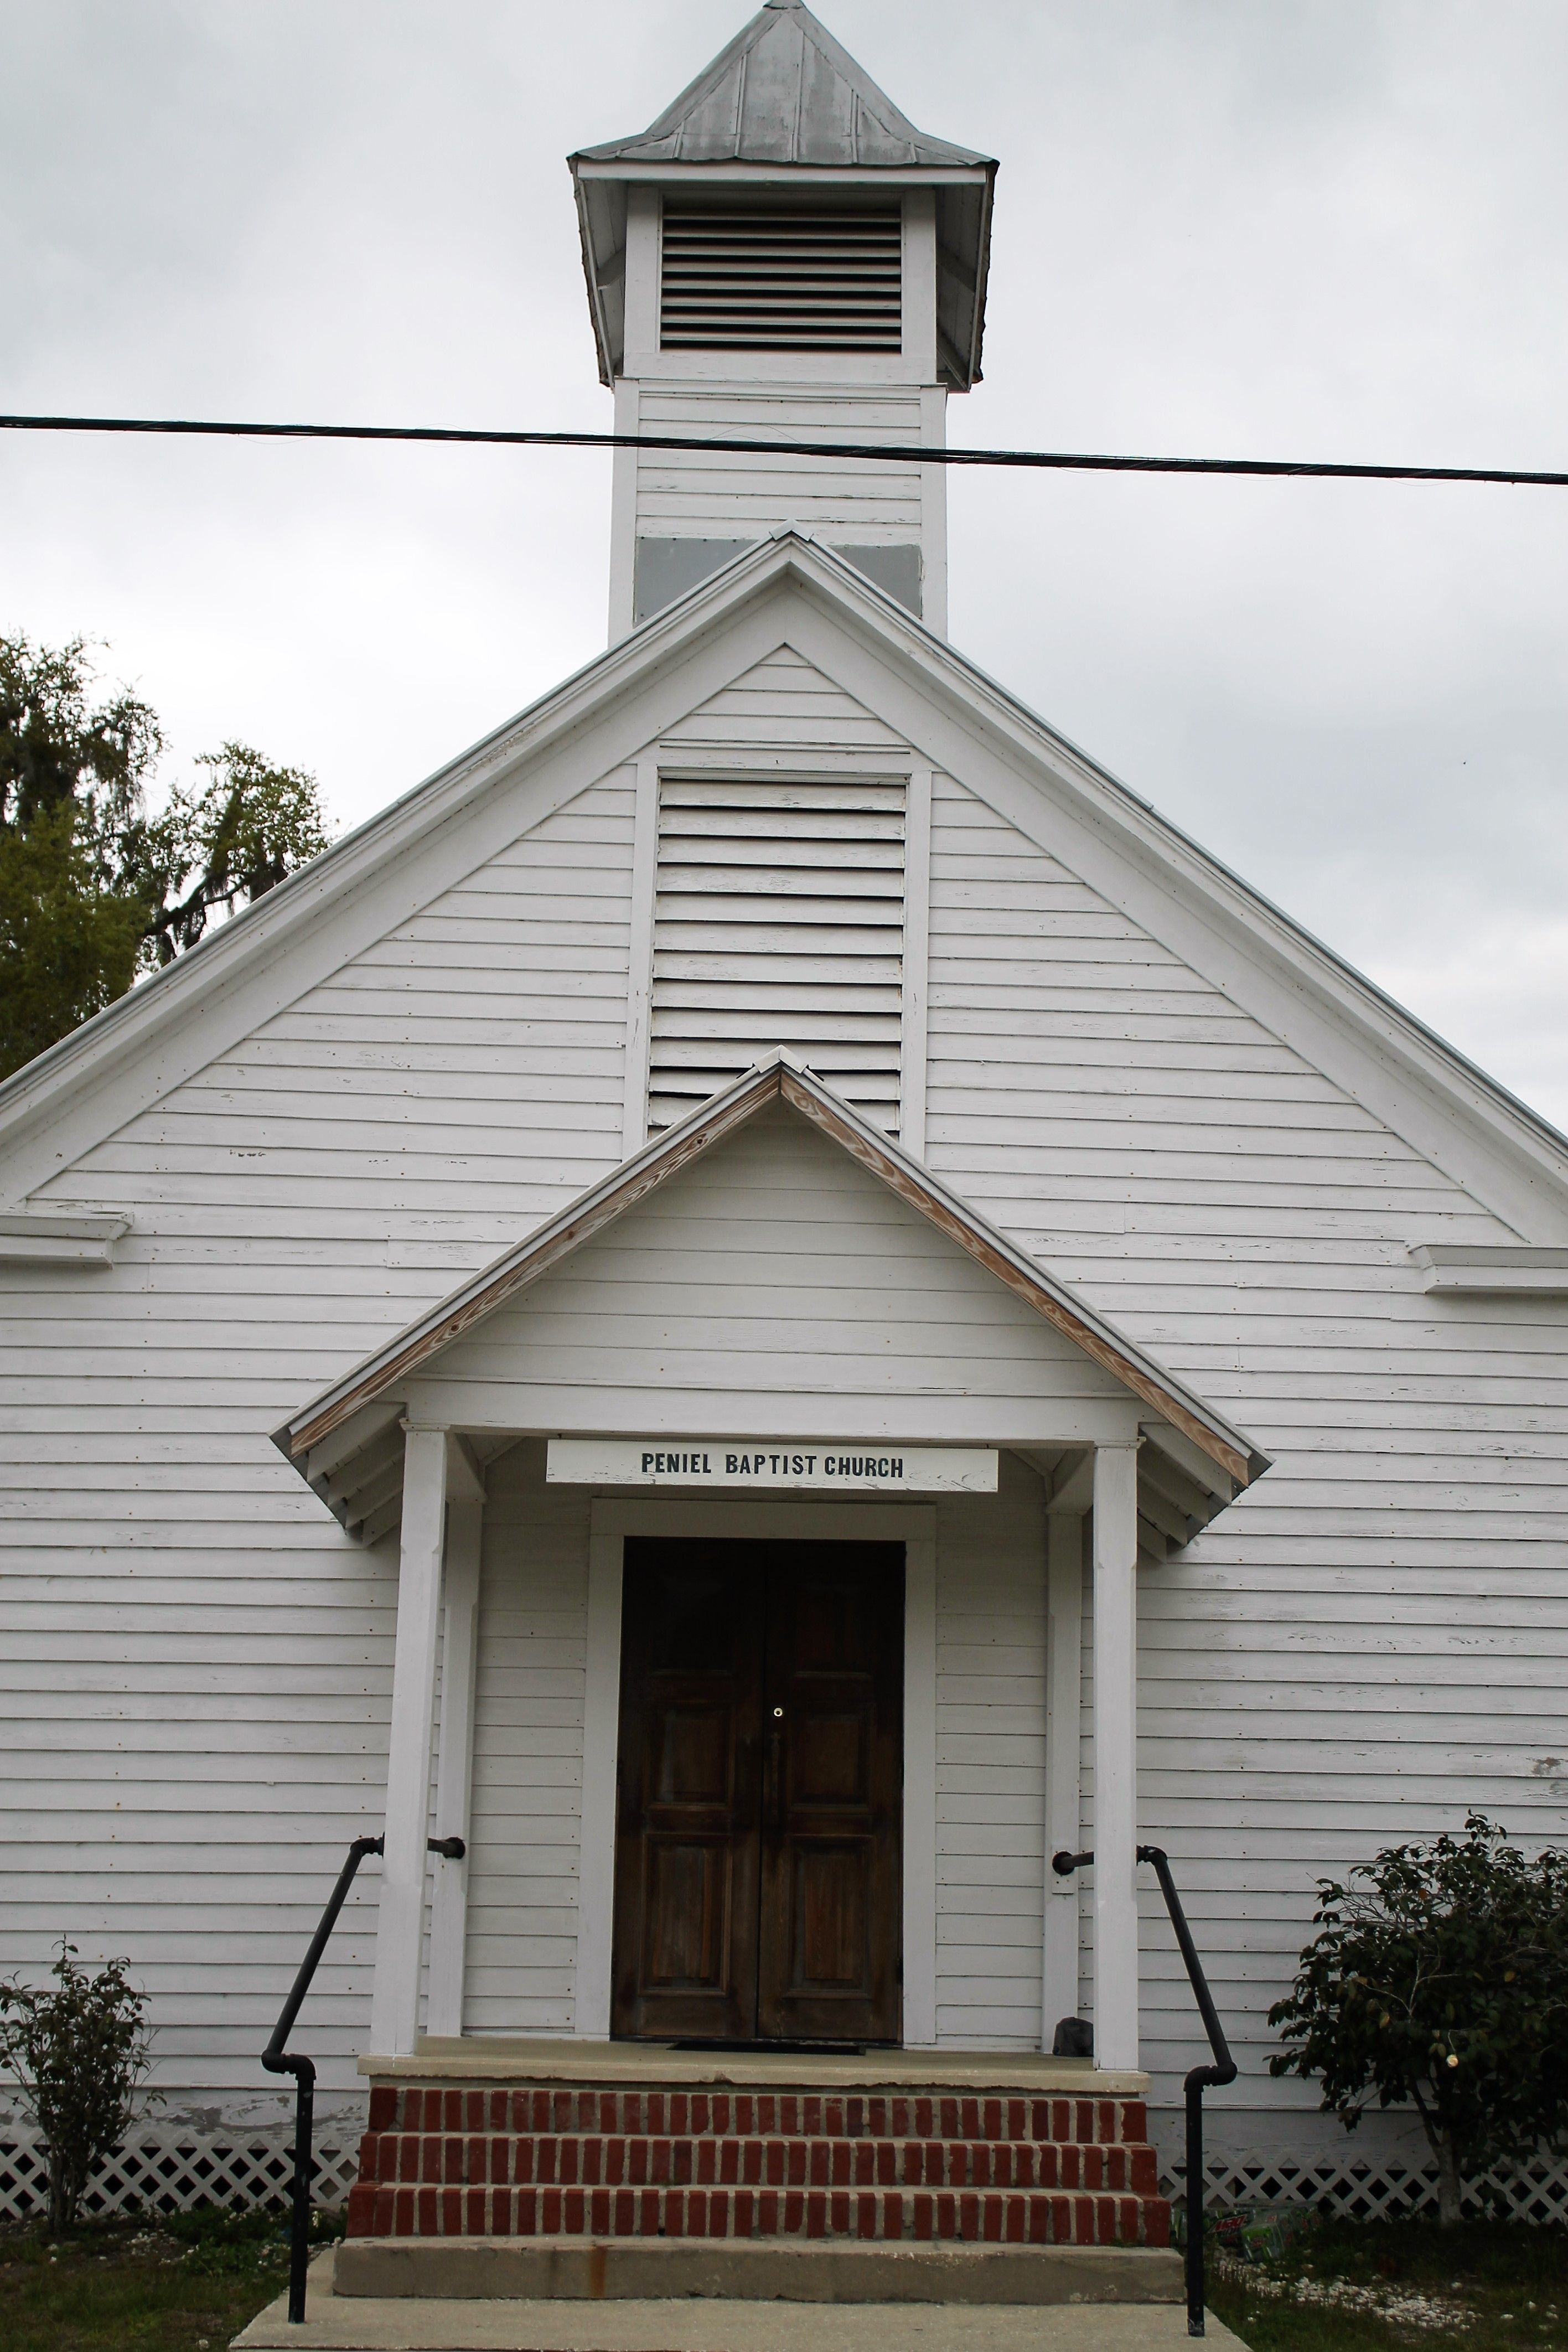 penial baptist church palatka fl billy graham preached there